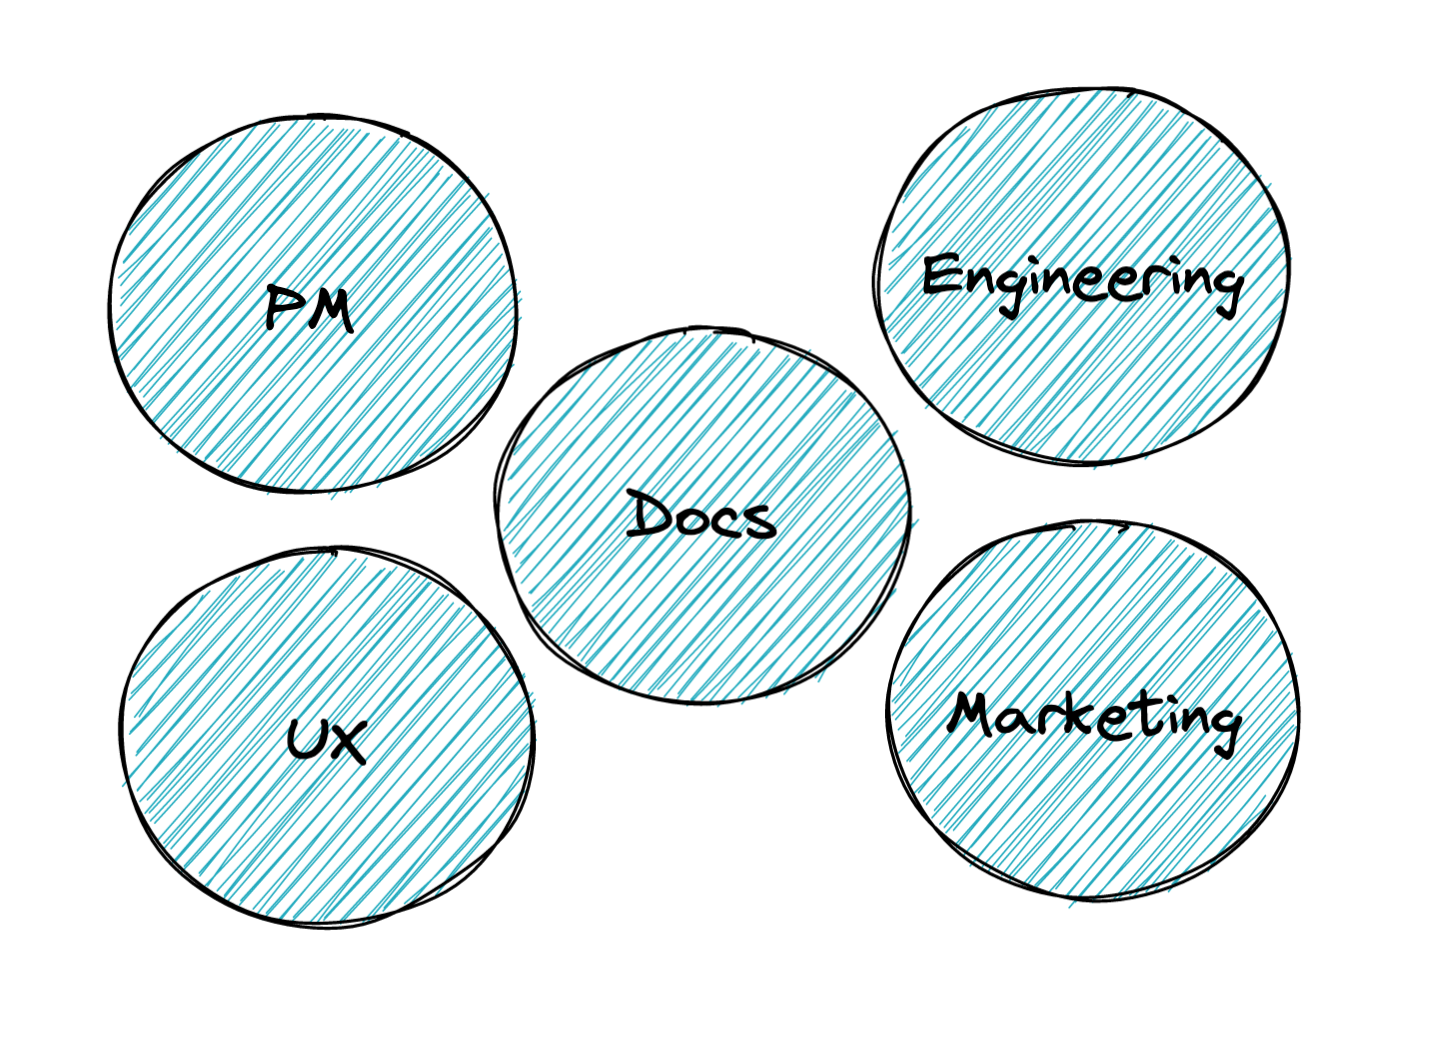 Diagram with 5 circles, 1 each representing PM, UX, Docs, Engineering, and Marketing.